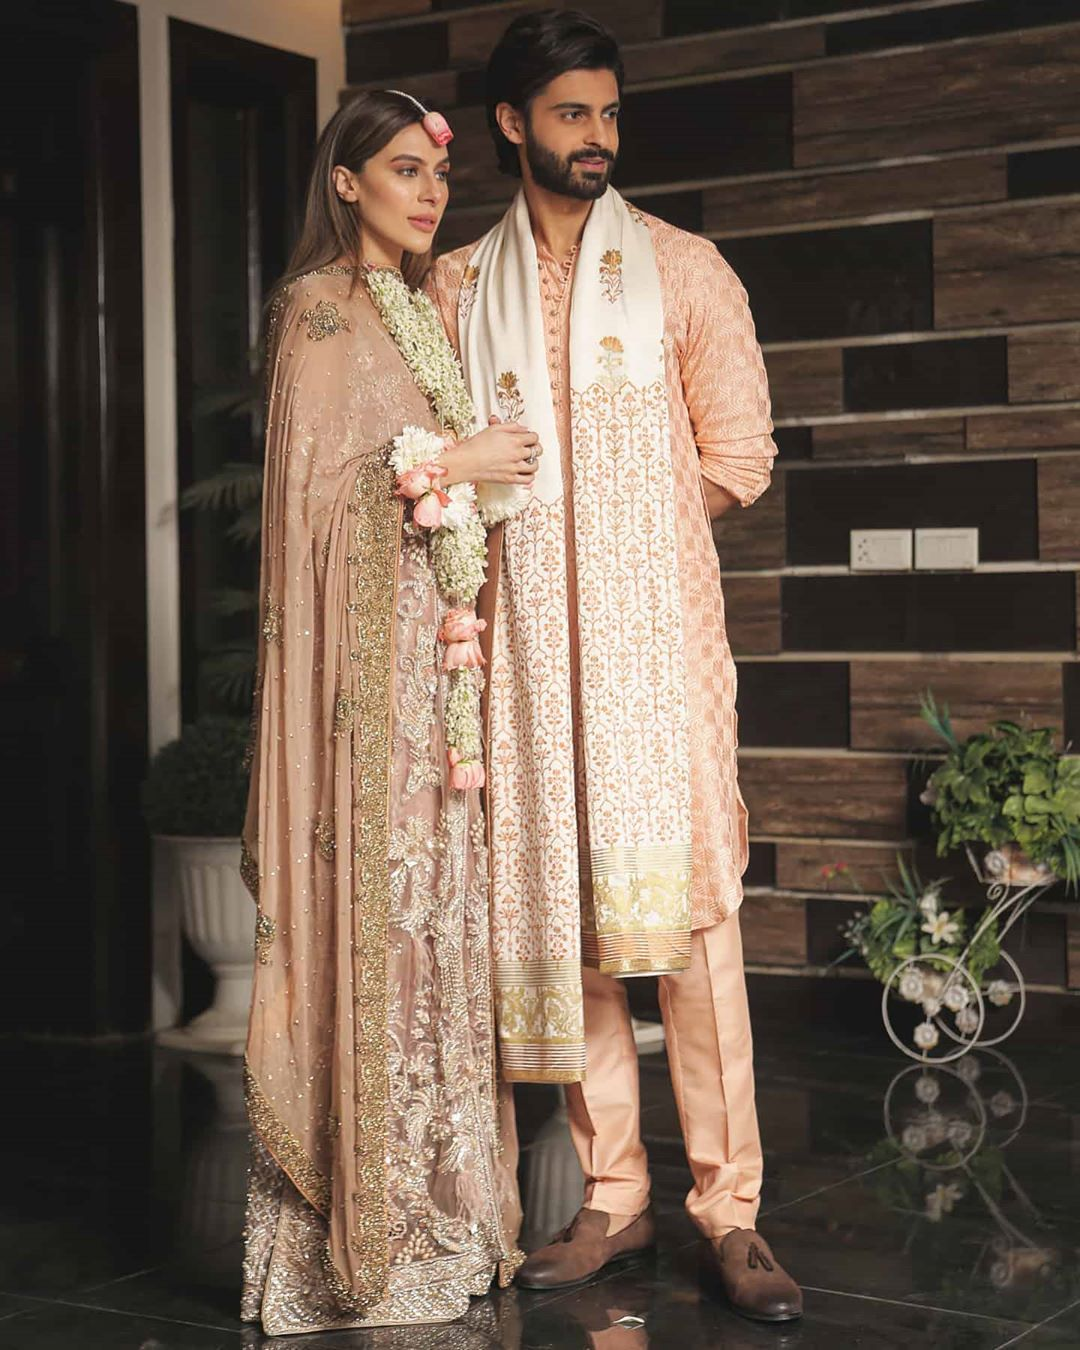 Actor Saad Qureshi's Beautiful Sangeet Night and Nikkah Pictures